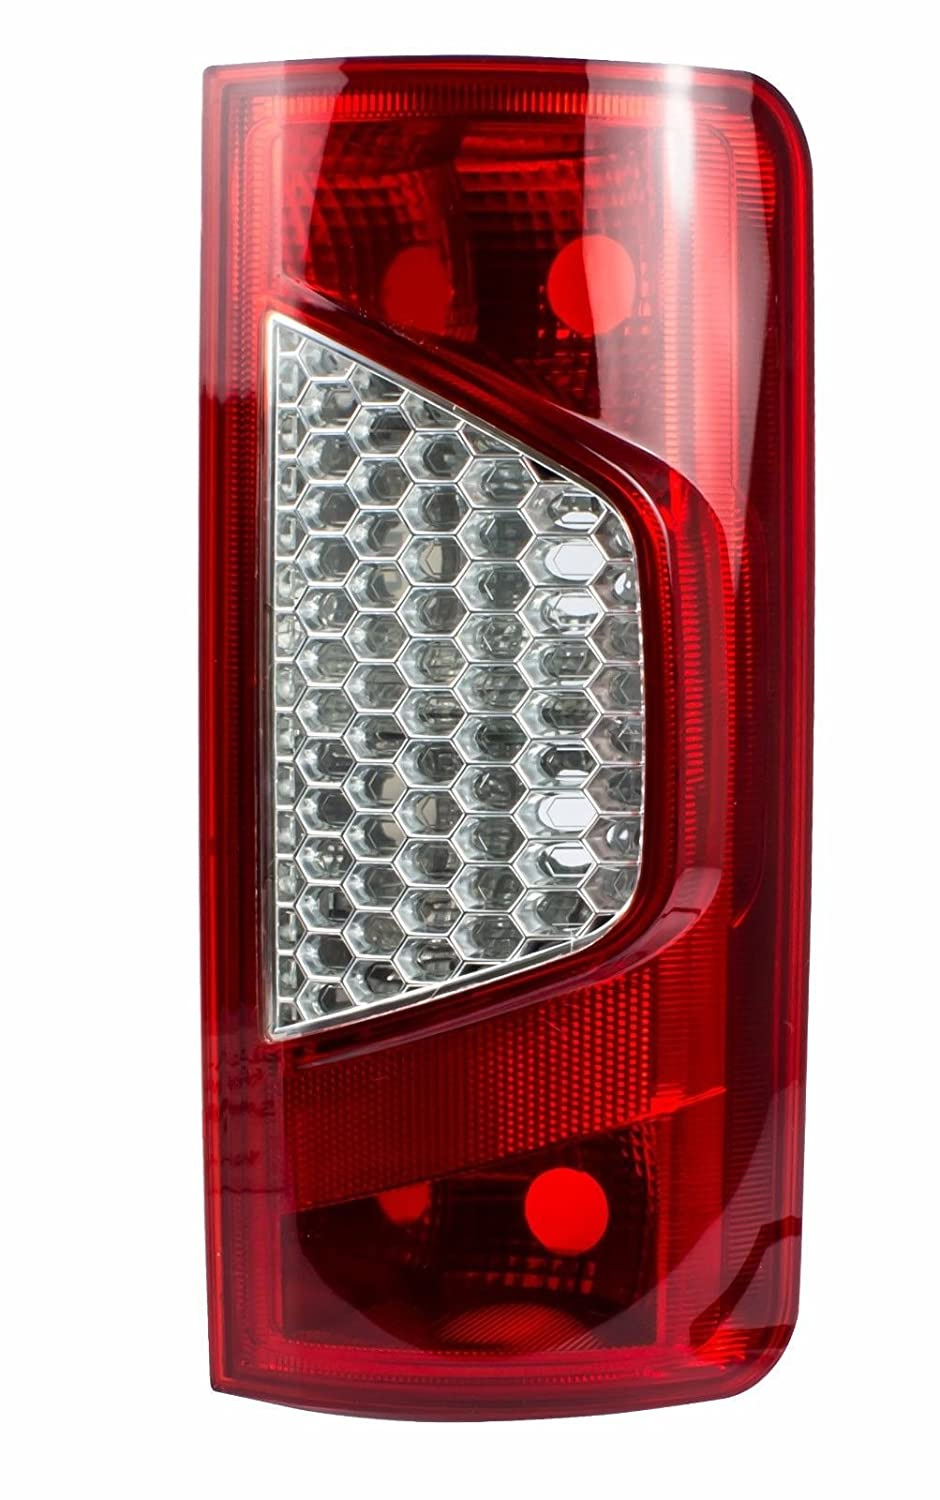 1519539 Genuine Ford Transit 2006-2011 High Level Rear Brake Light /& Bulb